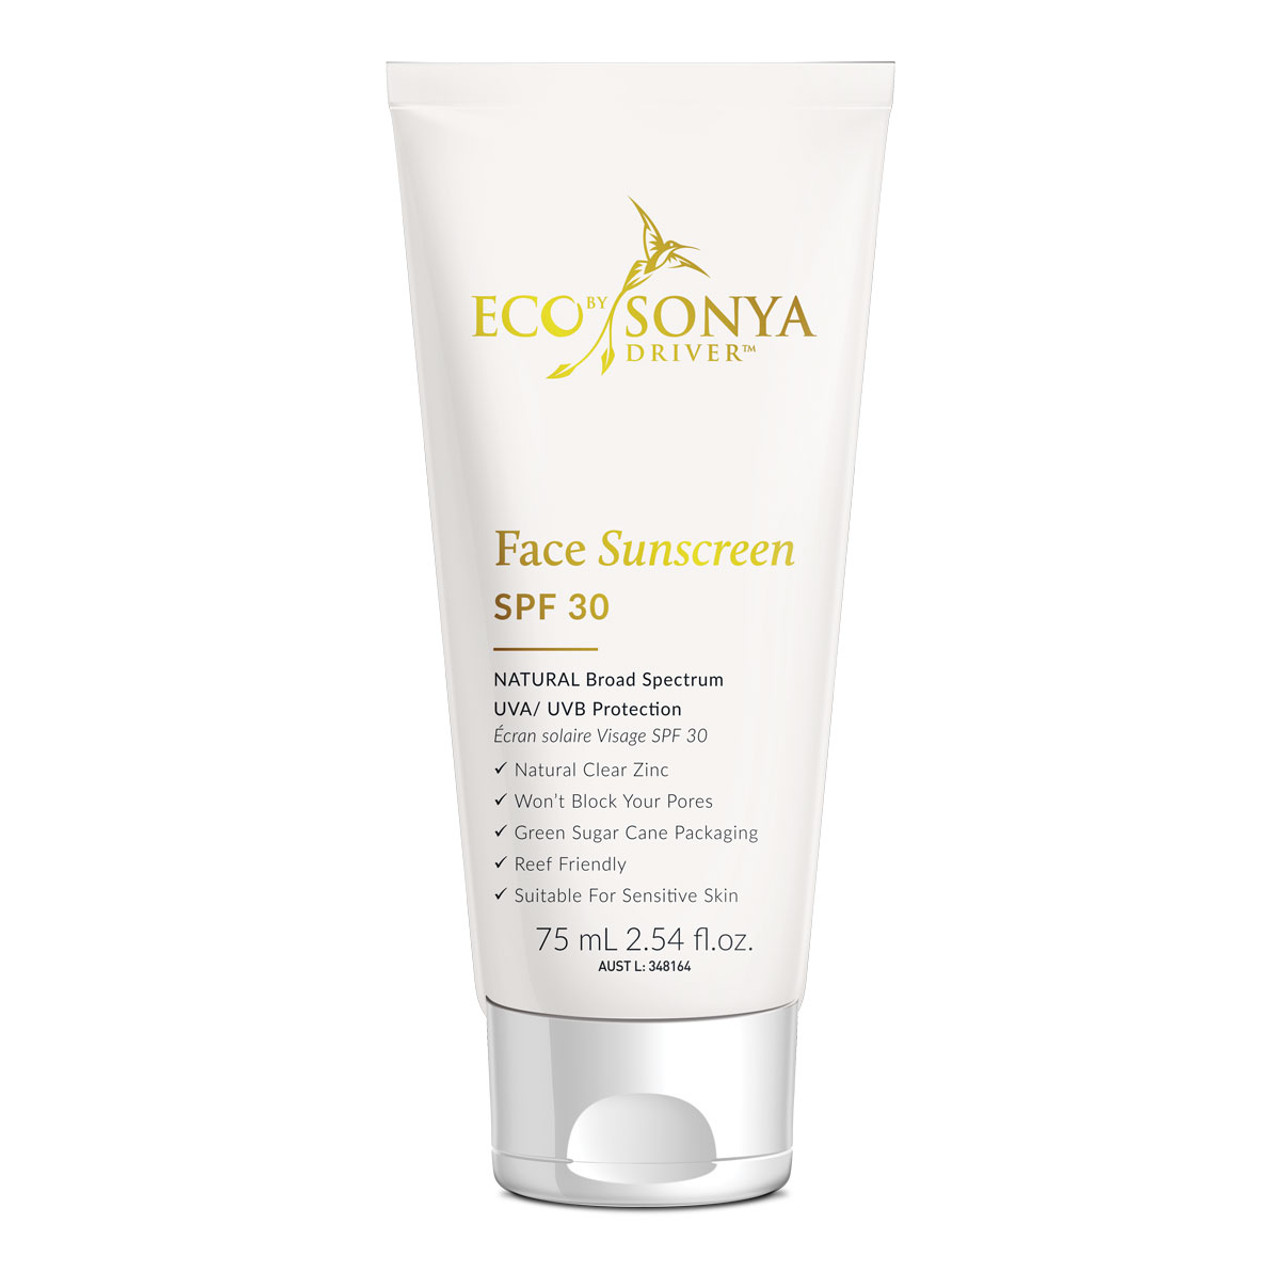 Eco By Sonya Face Sunscreen SPF30